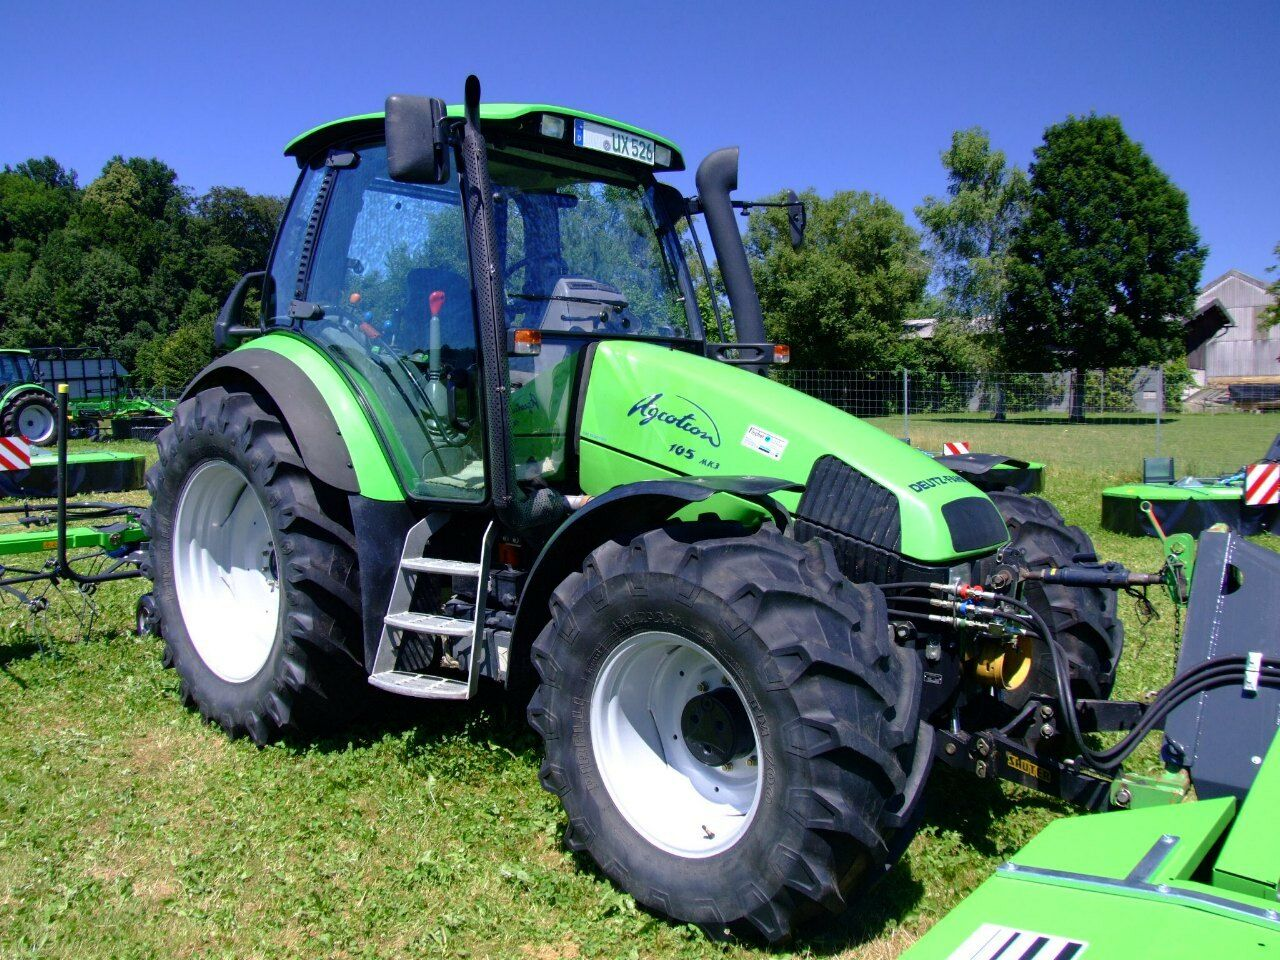 Deutz Fahr AgroTron Workshop Operators and Parts Manuals on CD 1 of 1FREE  Shipping ...